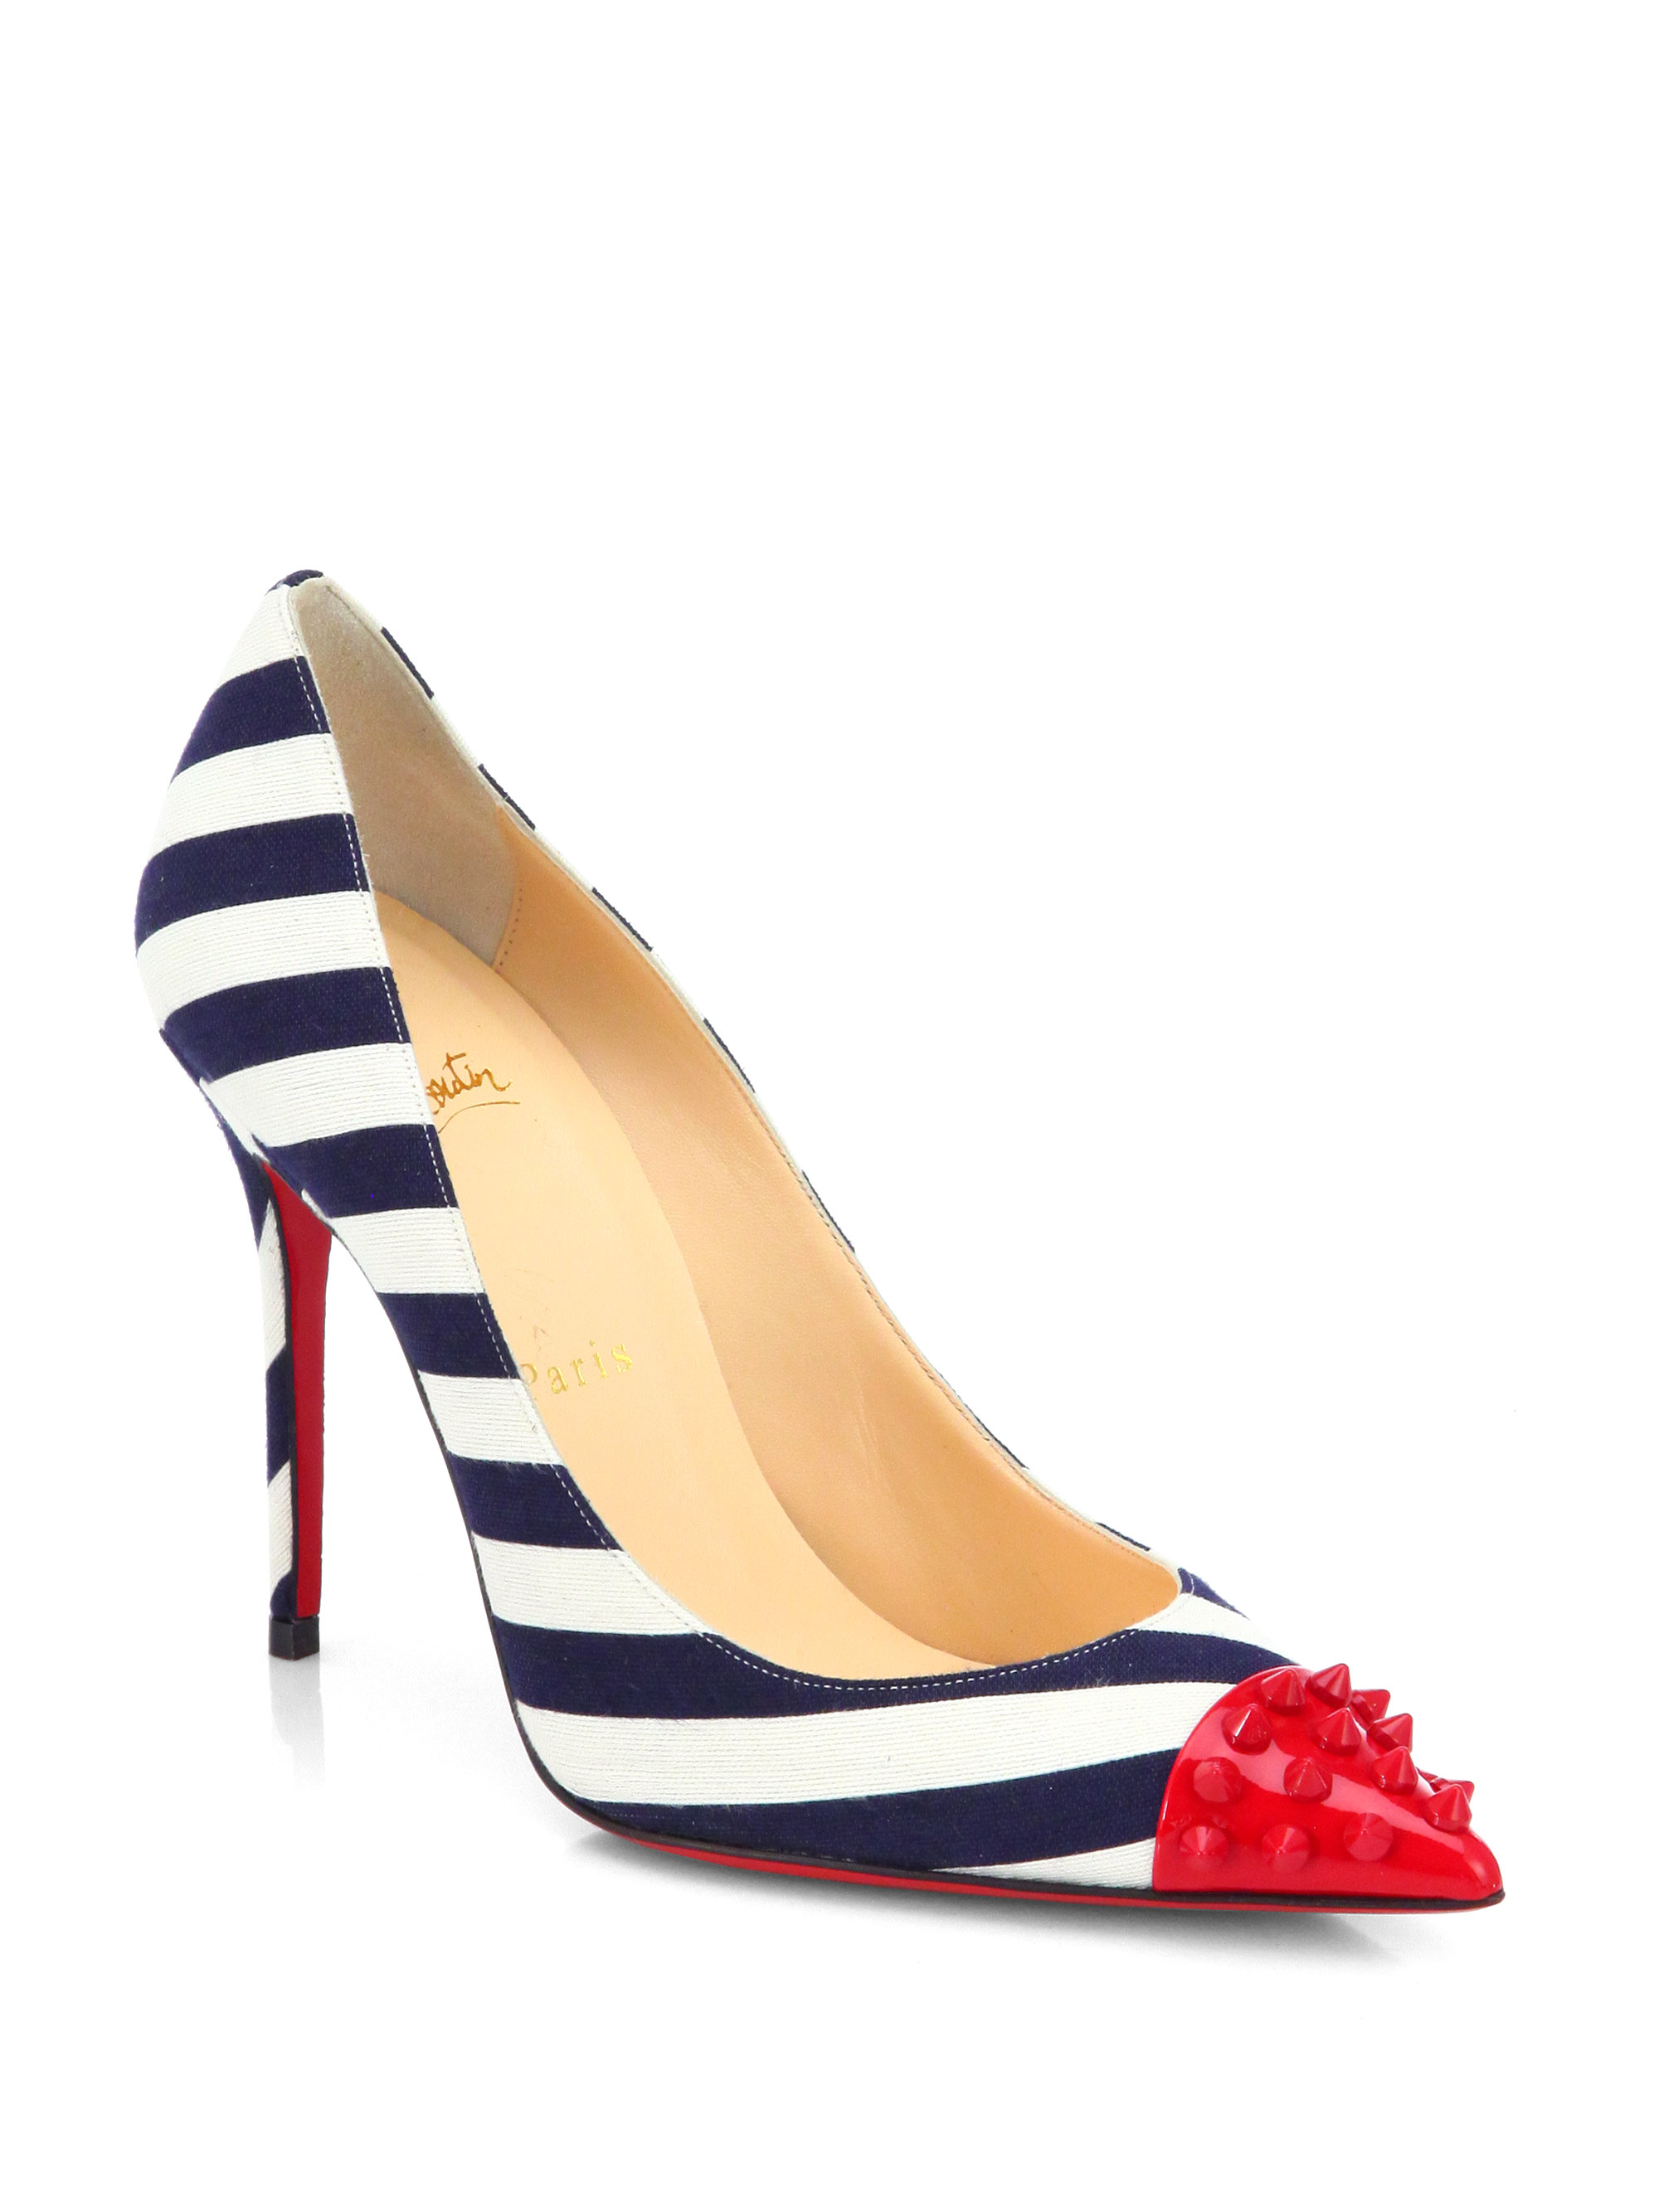 christian louboutin canvas wedges Navy peep-toe - Bbridges